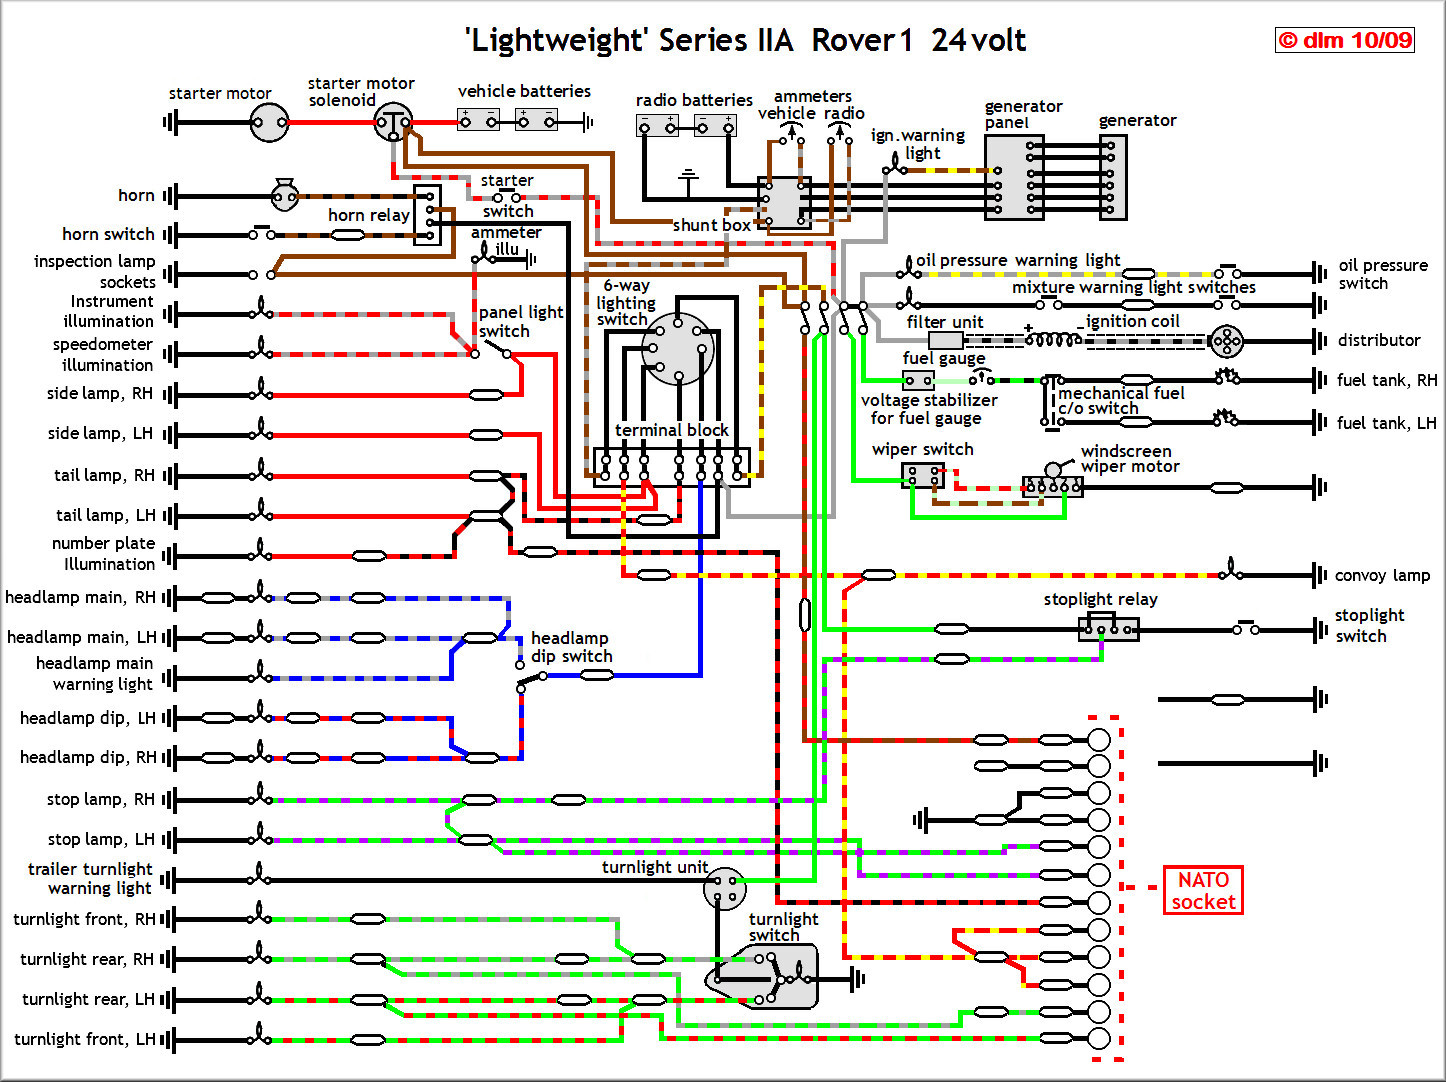 Wiring Diagram Range Rover P38 Auto Electrical Mini Cooper Engine 71 Exmod